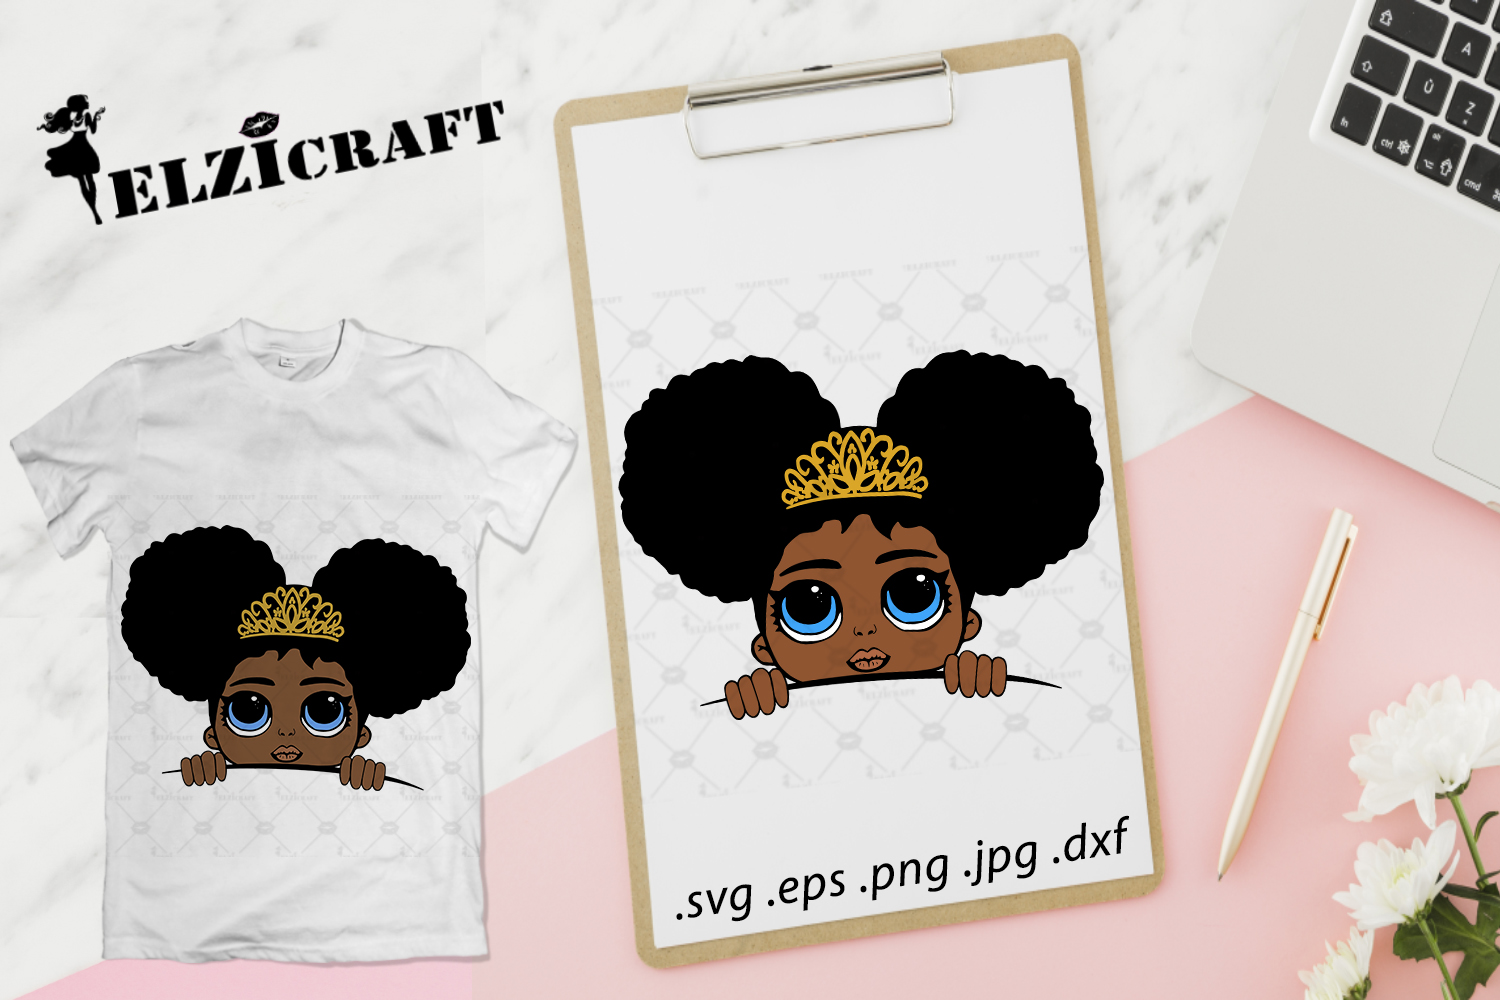 Download Free Afro Girl Peeking Princess Design Graphic By Elzicraft for Cricut Explore, Silhouette and other cutting machines.